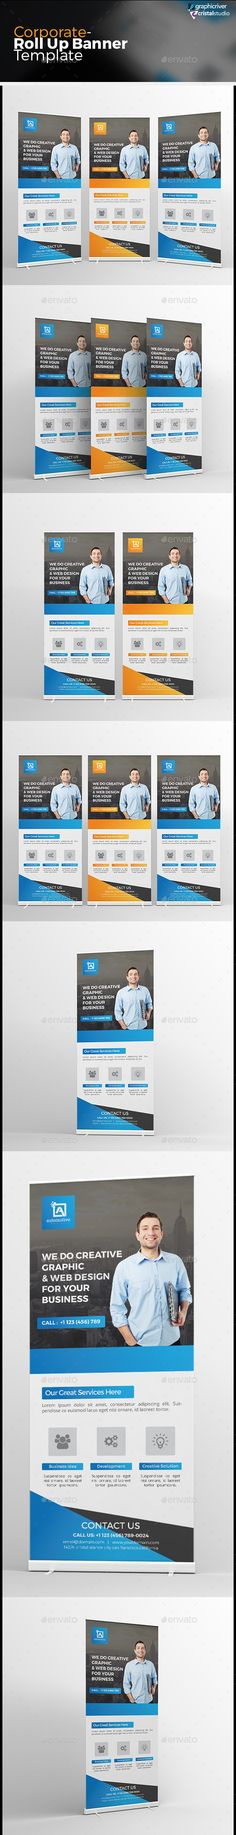 Corporate Roll-up Banner Template PSD #design Download: http://graphicriver.net/item/corporate-rollup-banner/13628648?ref=ksioks